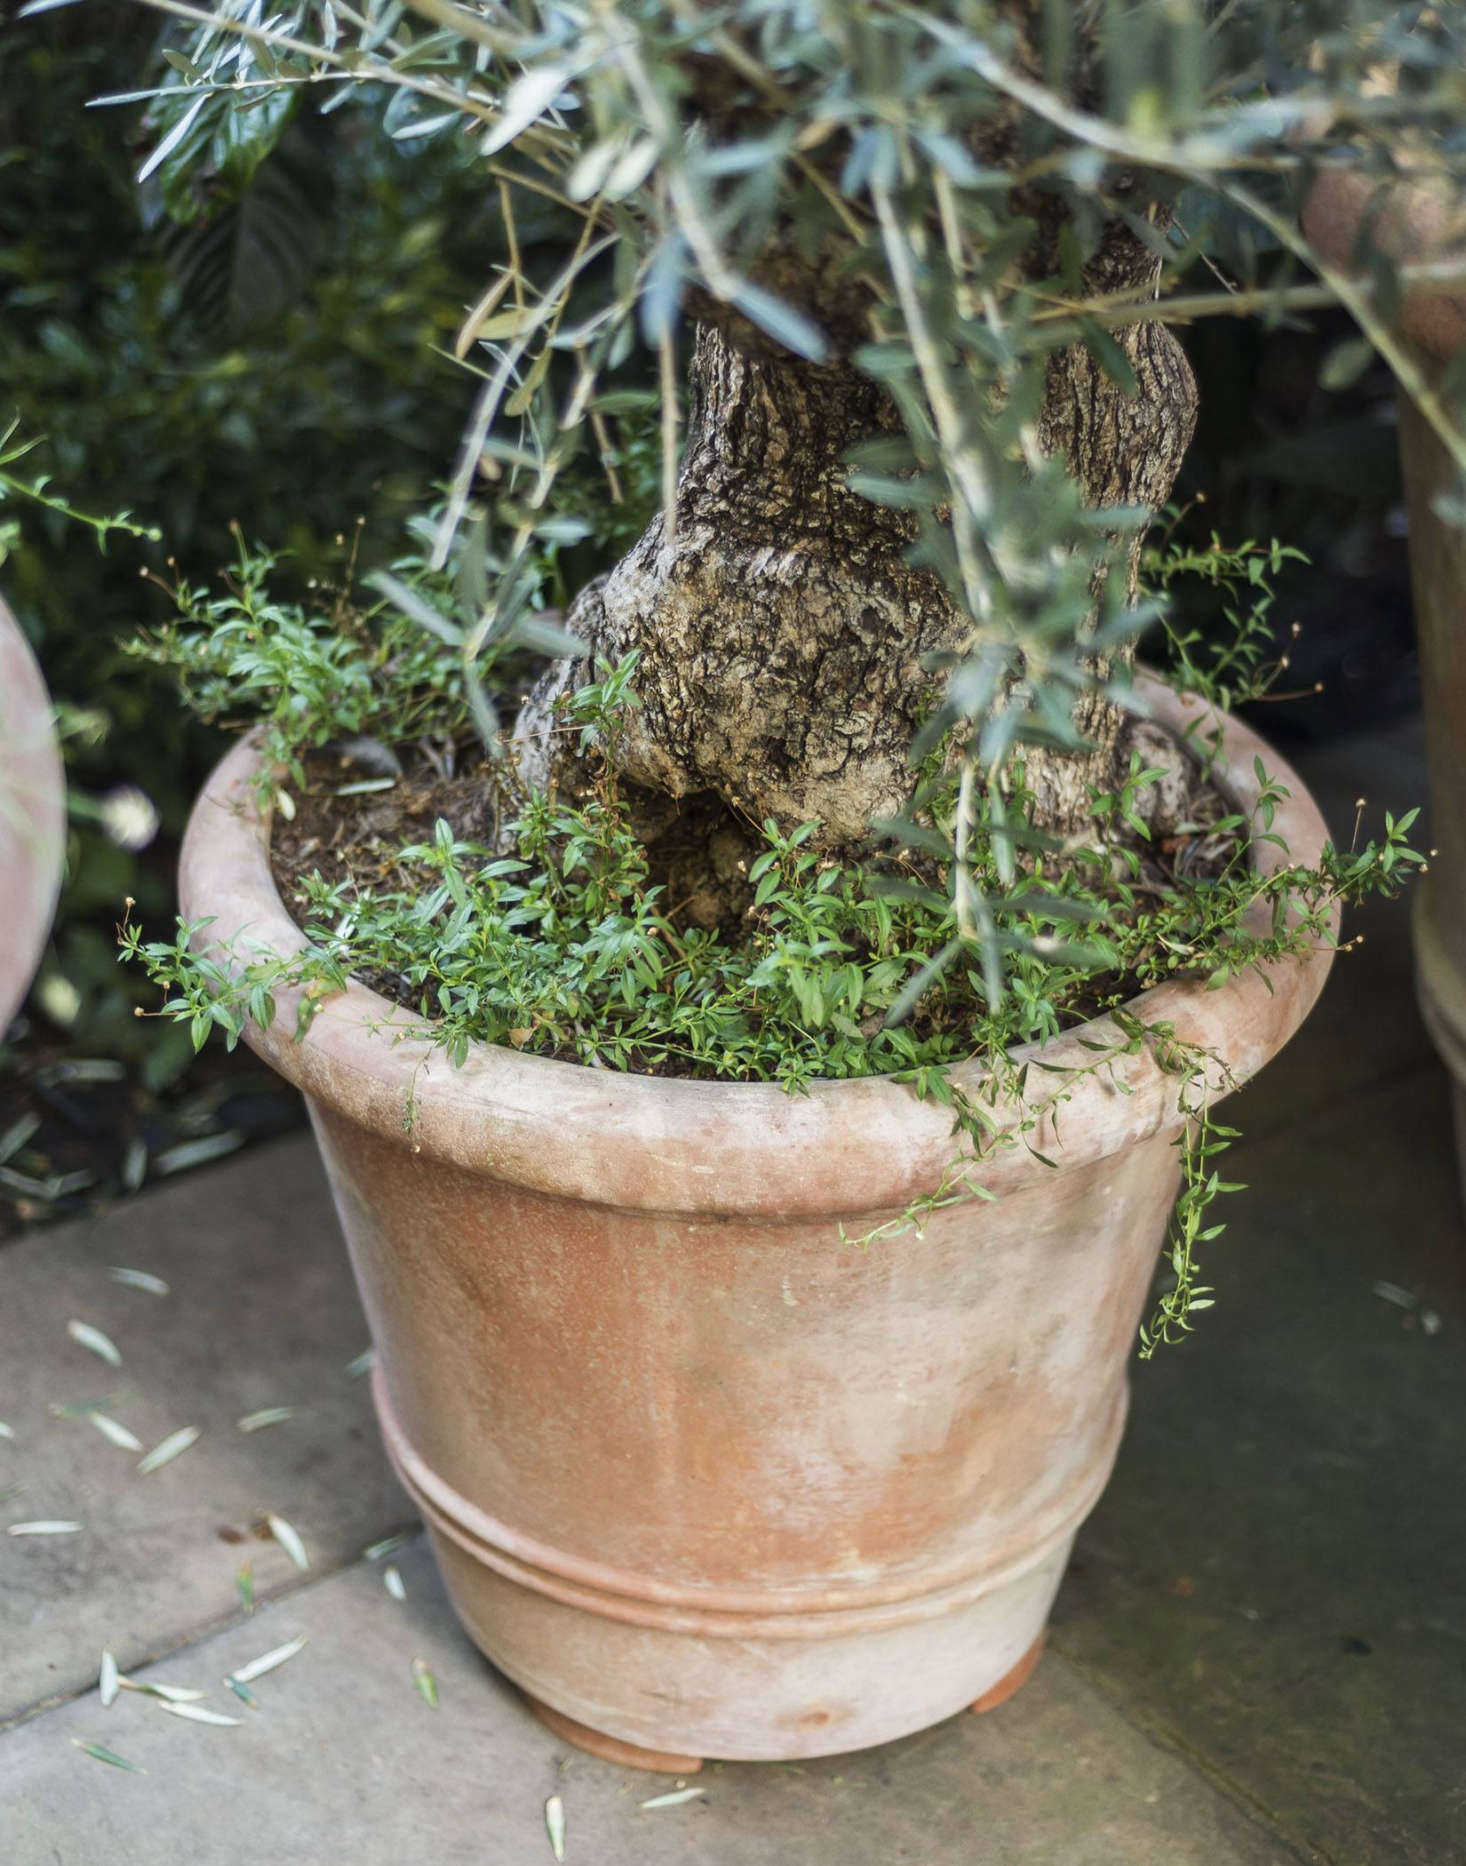 A mature olive tree thrives in an accommodating terra cotta pot.